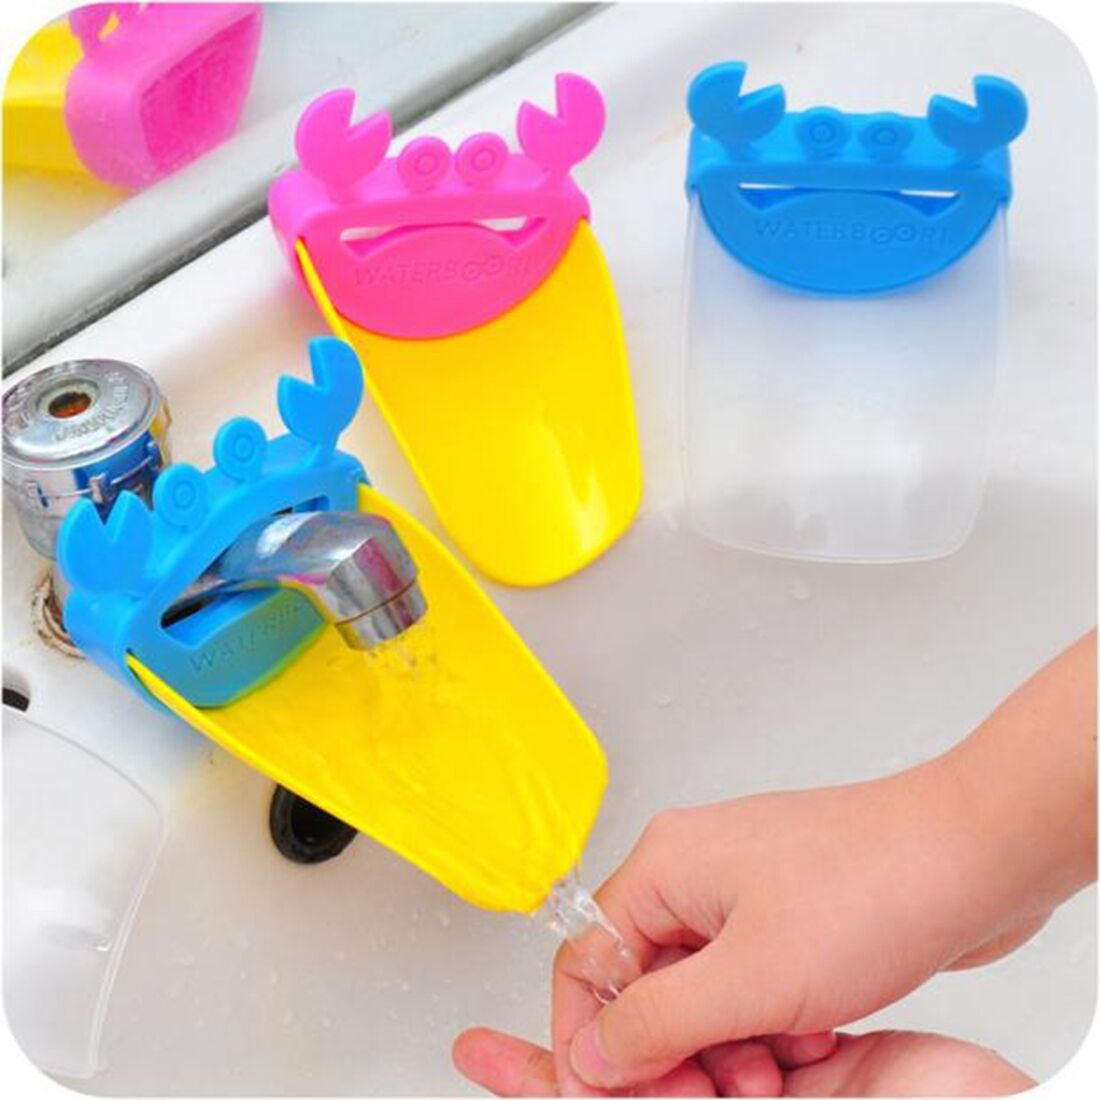 Home Bathroom Sink Water Hand Washing Faucet Tap Extender Colorful ...